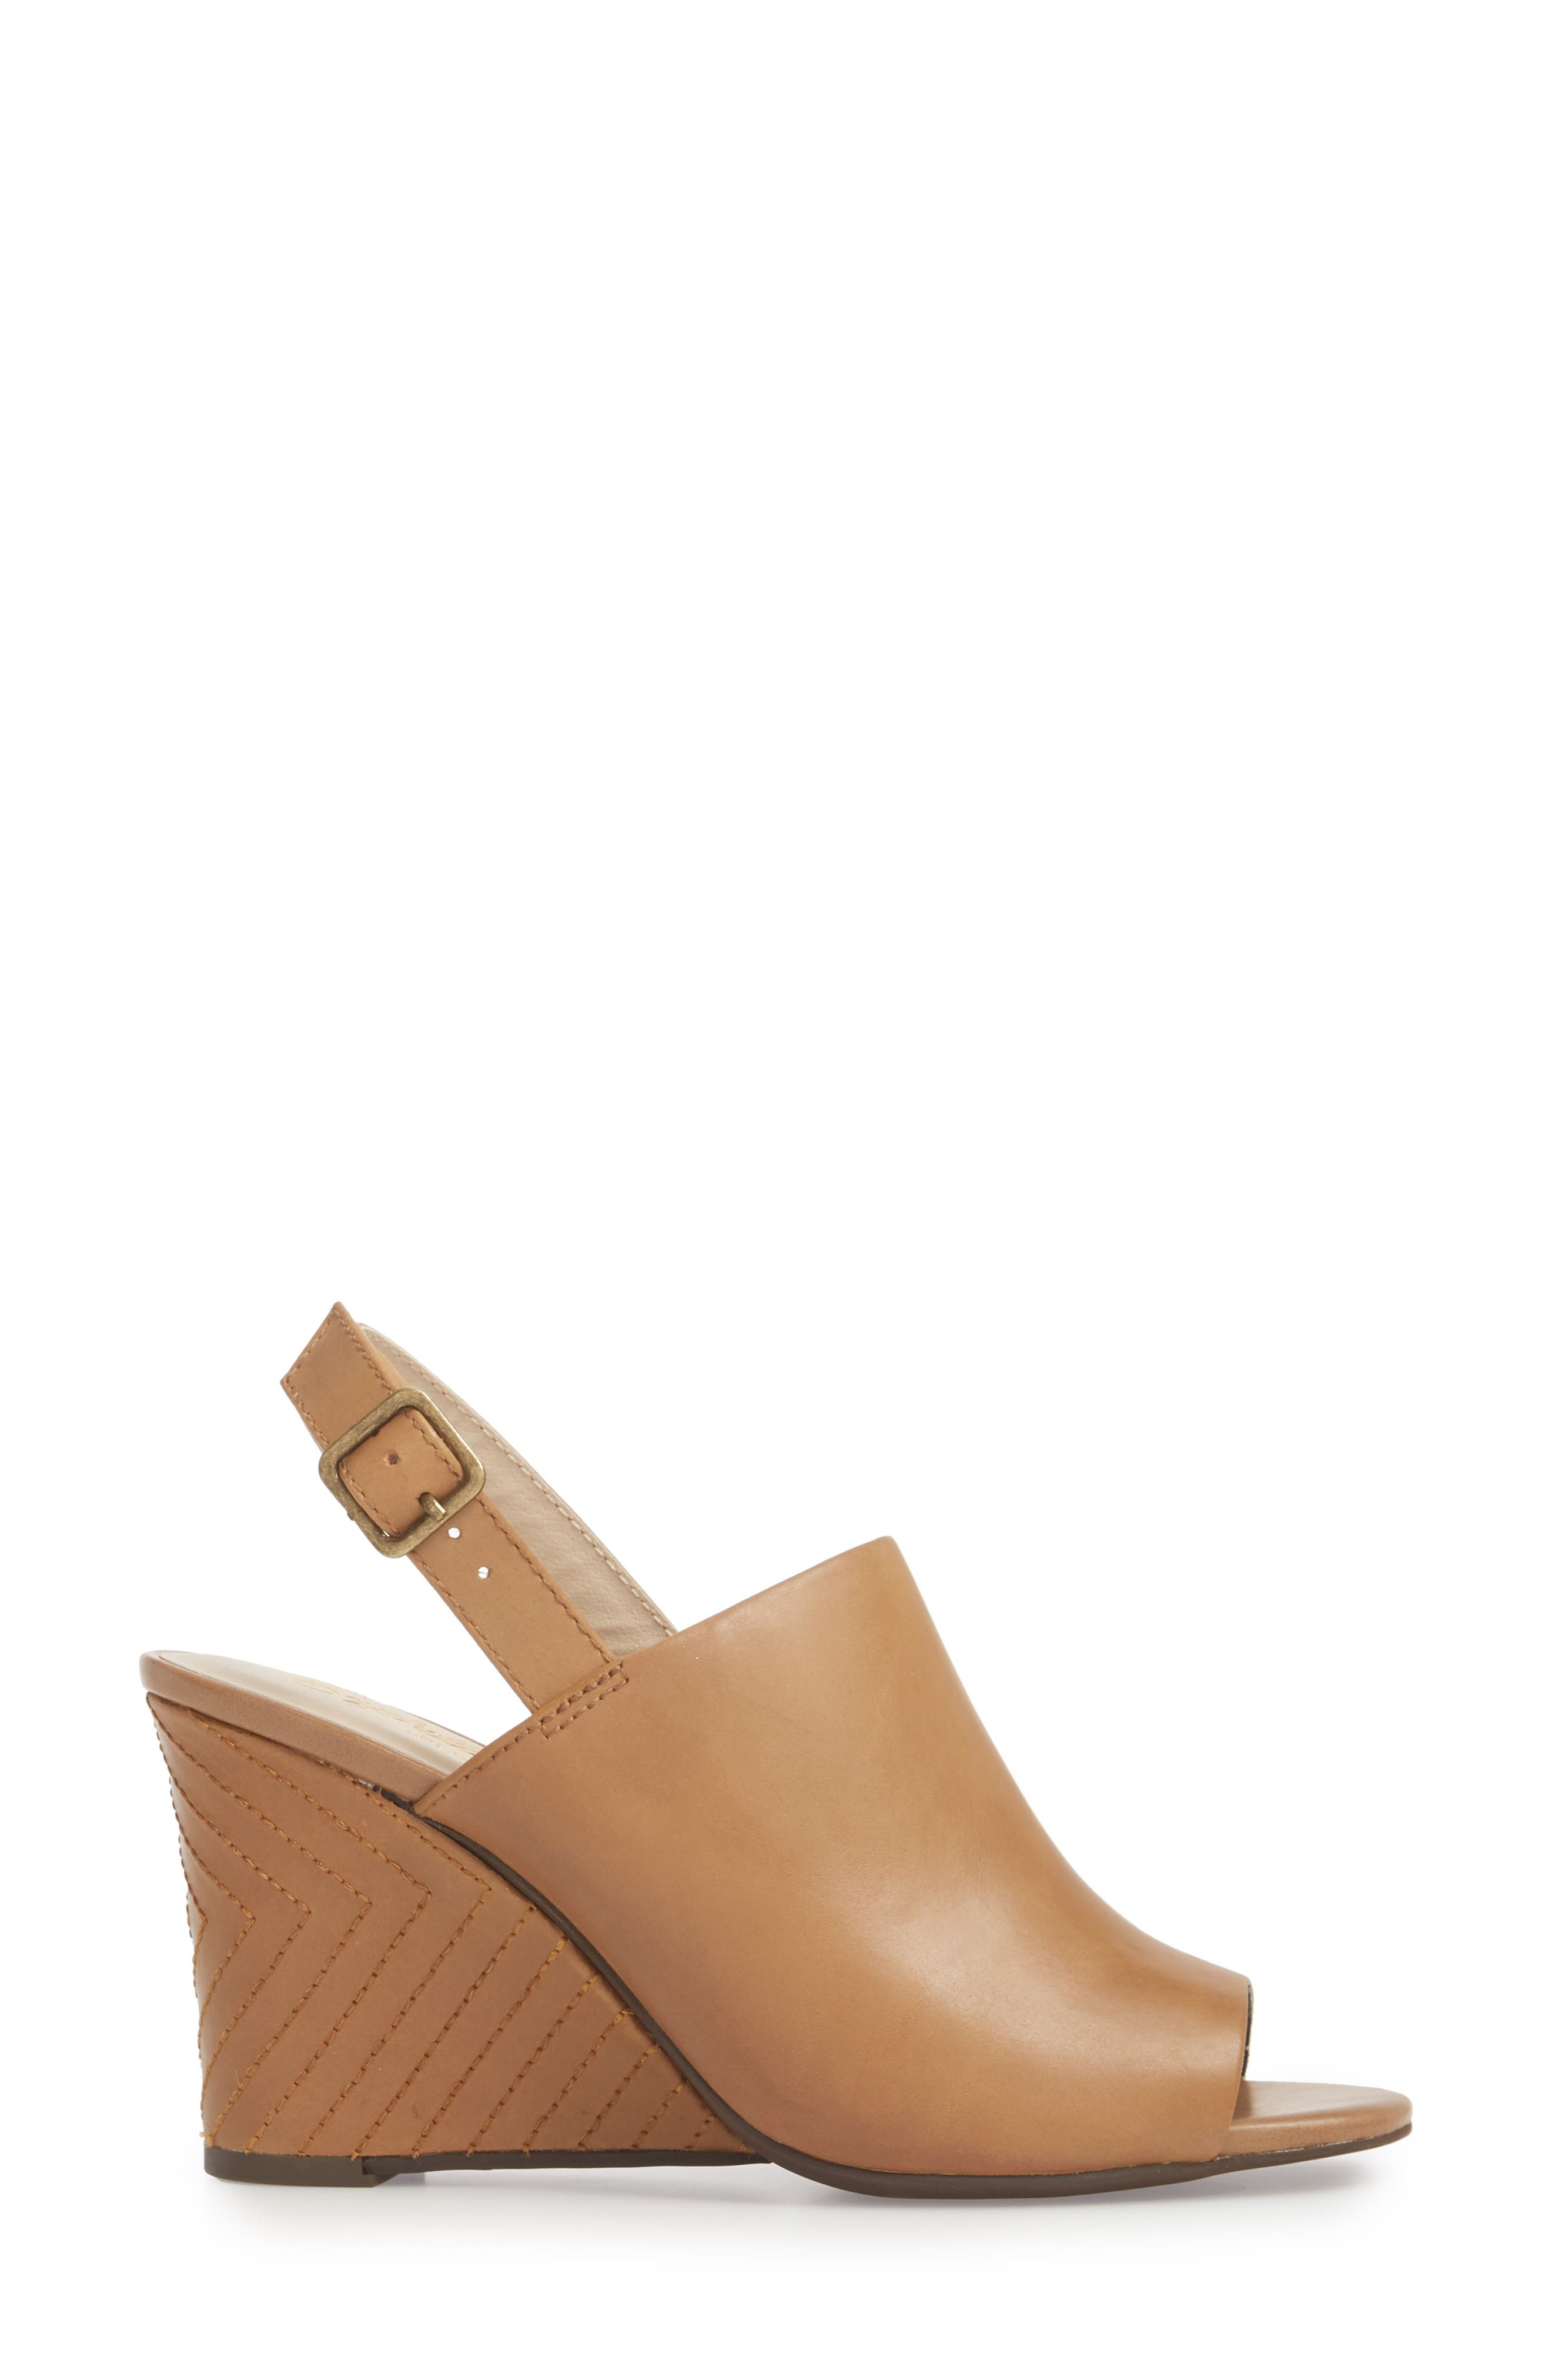 Abyssal Wedge Sandal,                             Alternate thumbnail 3, color,                             TAN LEATHER